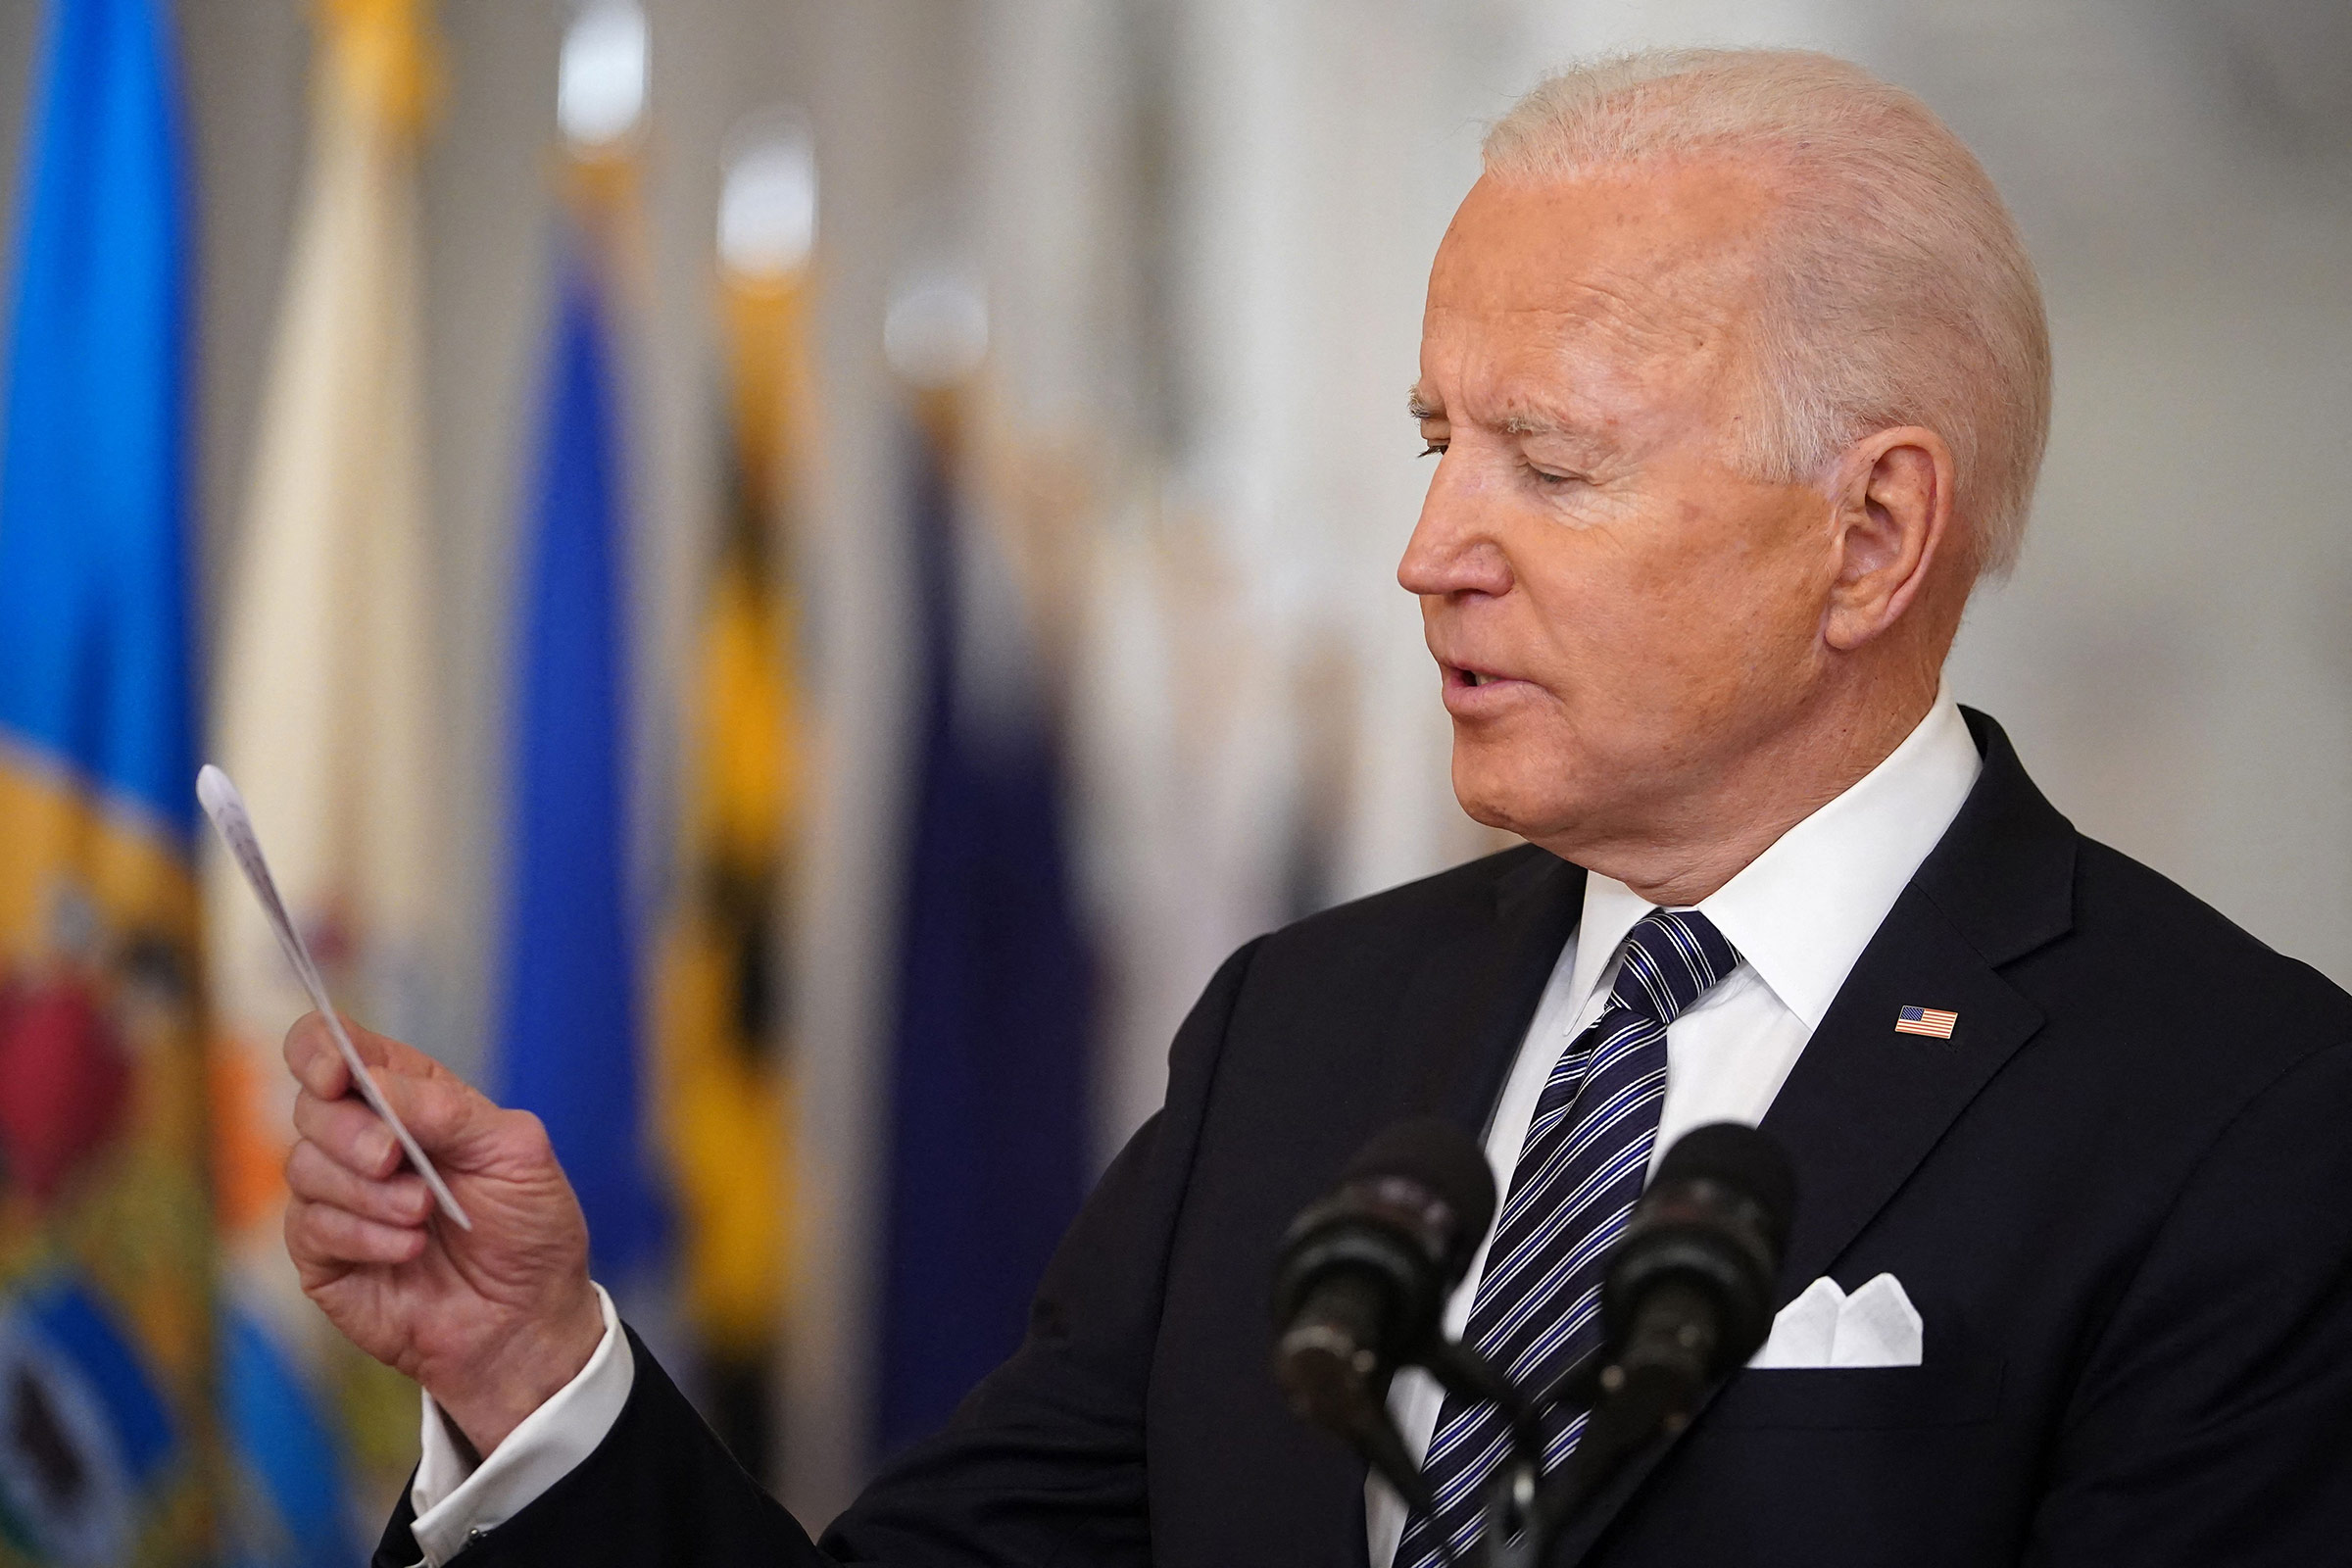 President Joe Biden looks at a card he pulled from his pocket to read the number of Americans who have died of Covid-19 to date, as he speaks on the anniversary of the start of the Covid-19 pandemic, at White House in Washington, DC on March 11.